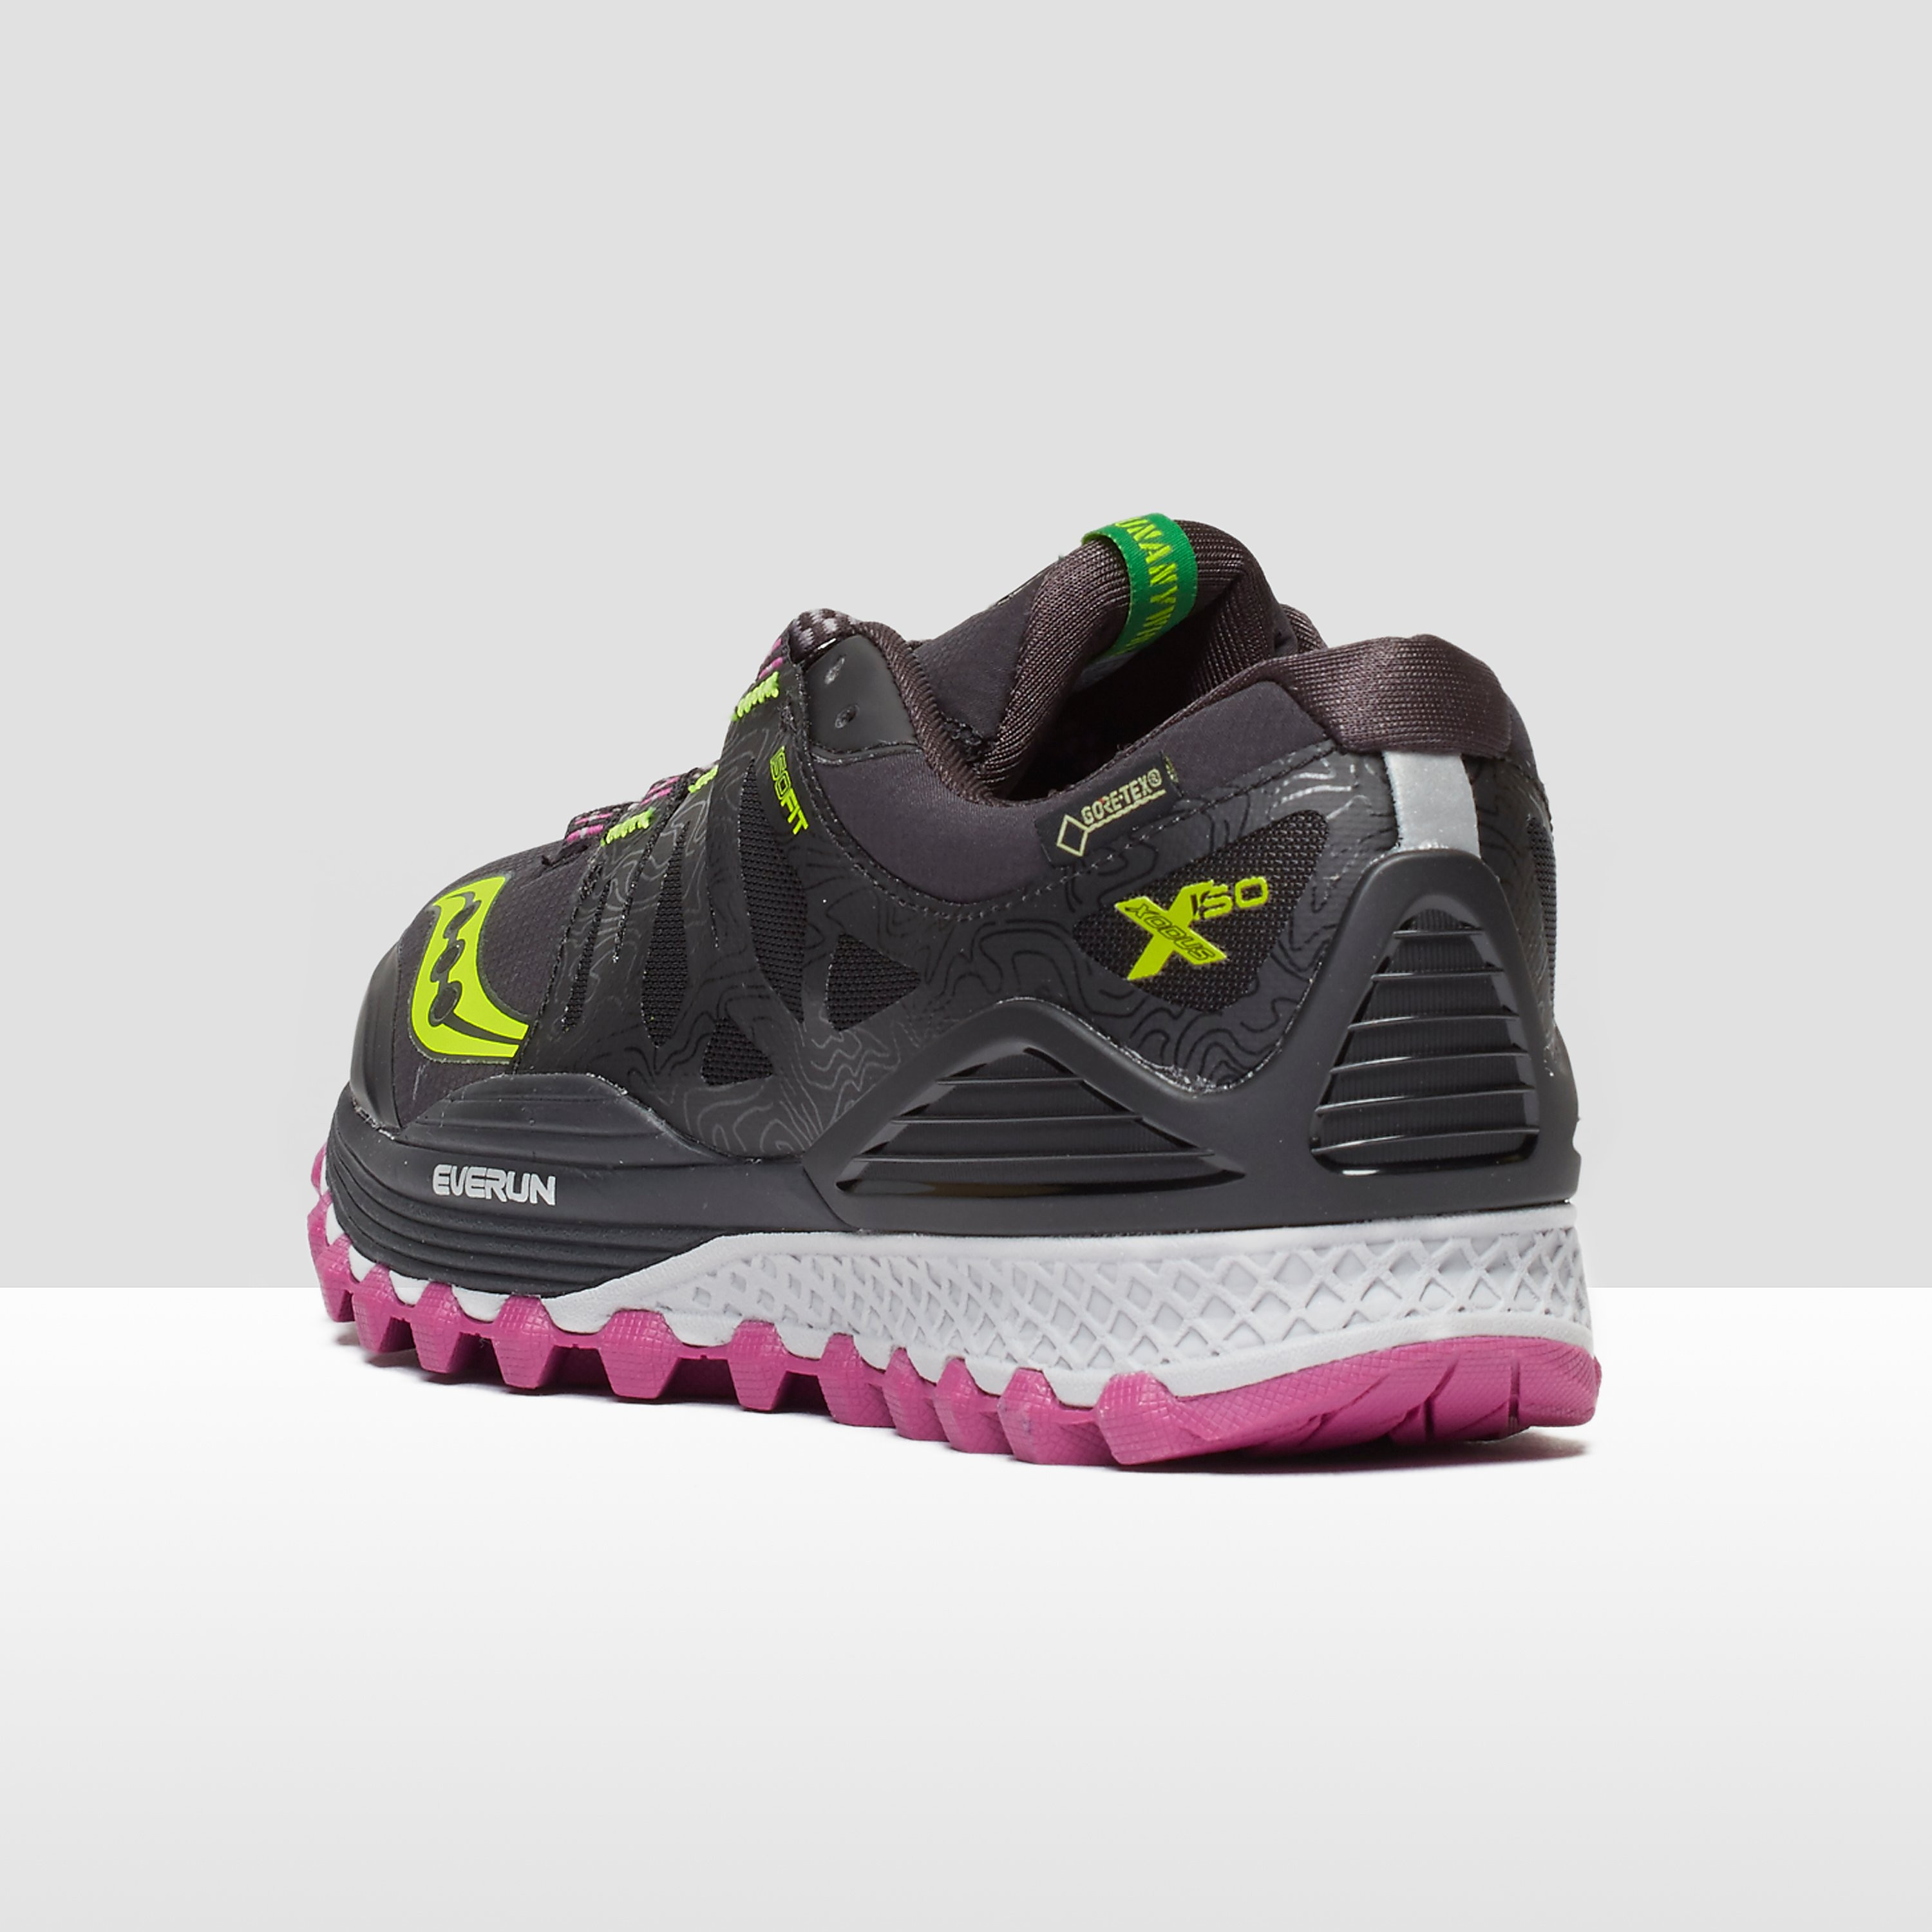 Saucony Women's Xodus ISO Trail running Shoes